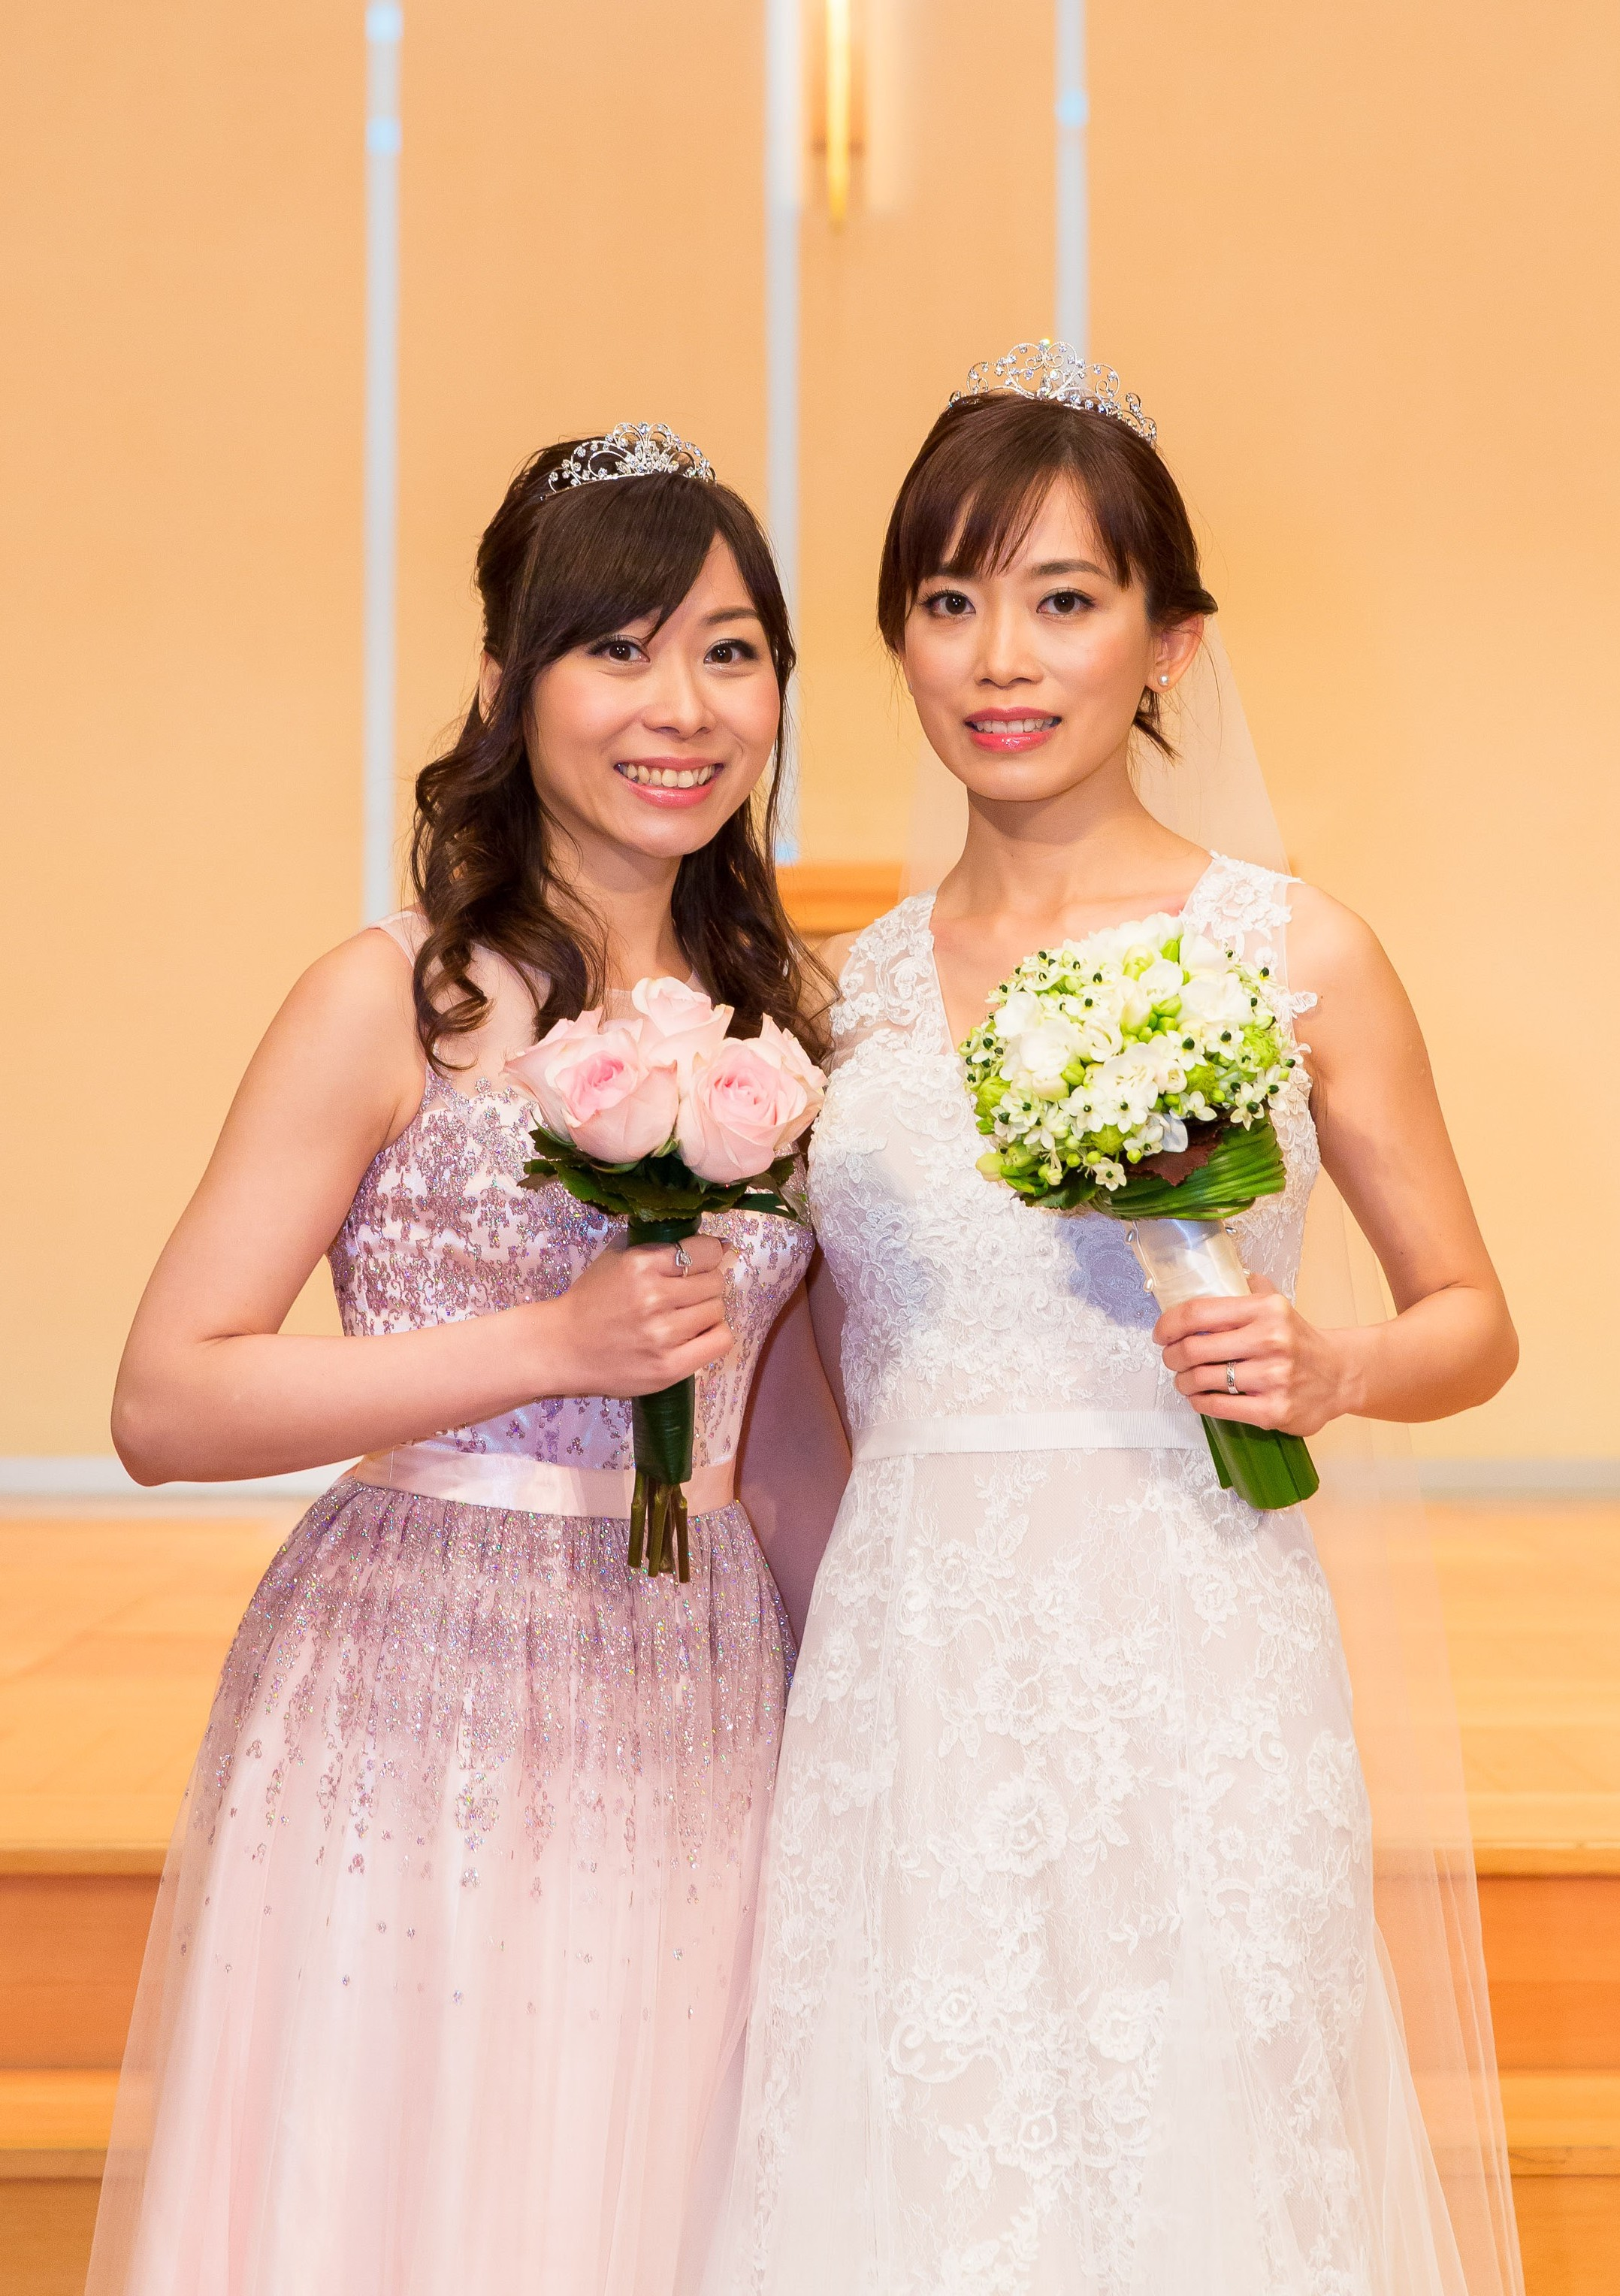 HK bride and bridemaids makeup